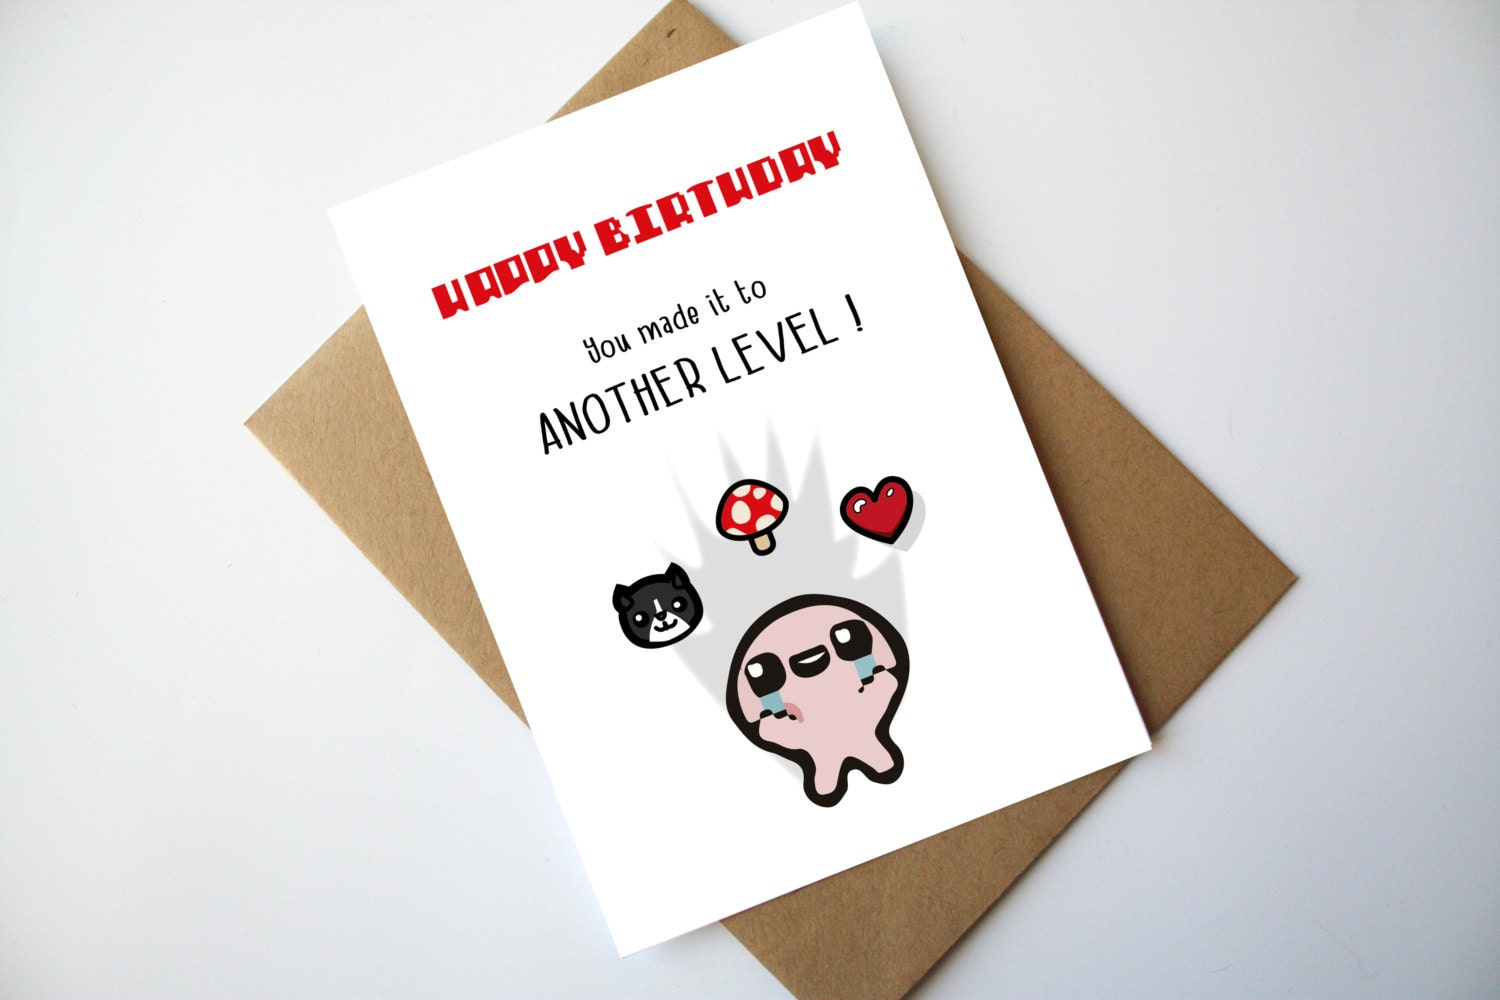 The Binding Of Isaac Birthday Card You Made It To Another